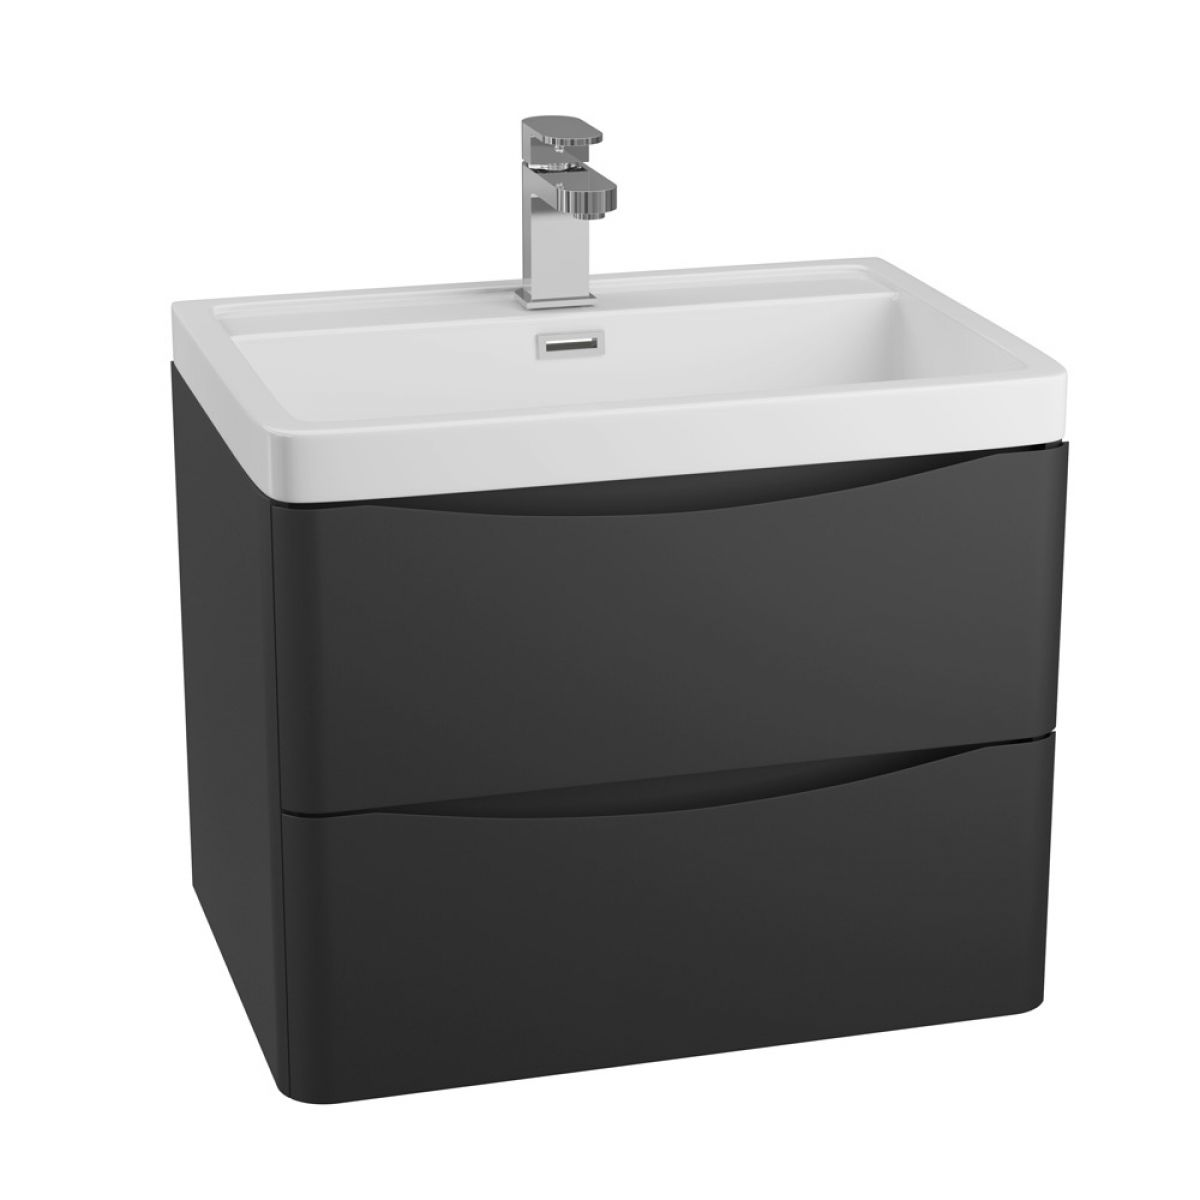 Bali Matt Black Wall Mounted Vanity Unit 600mm